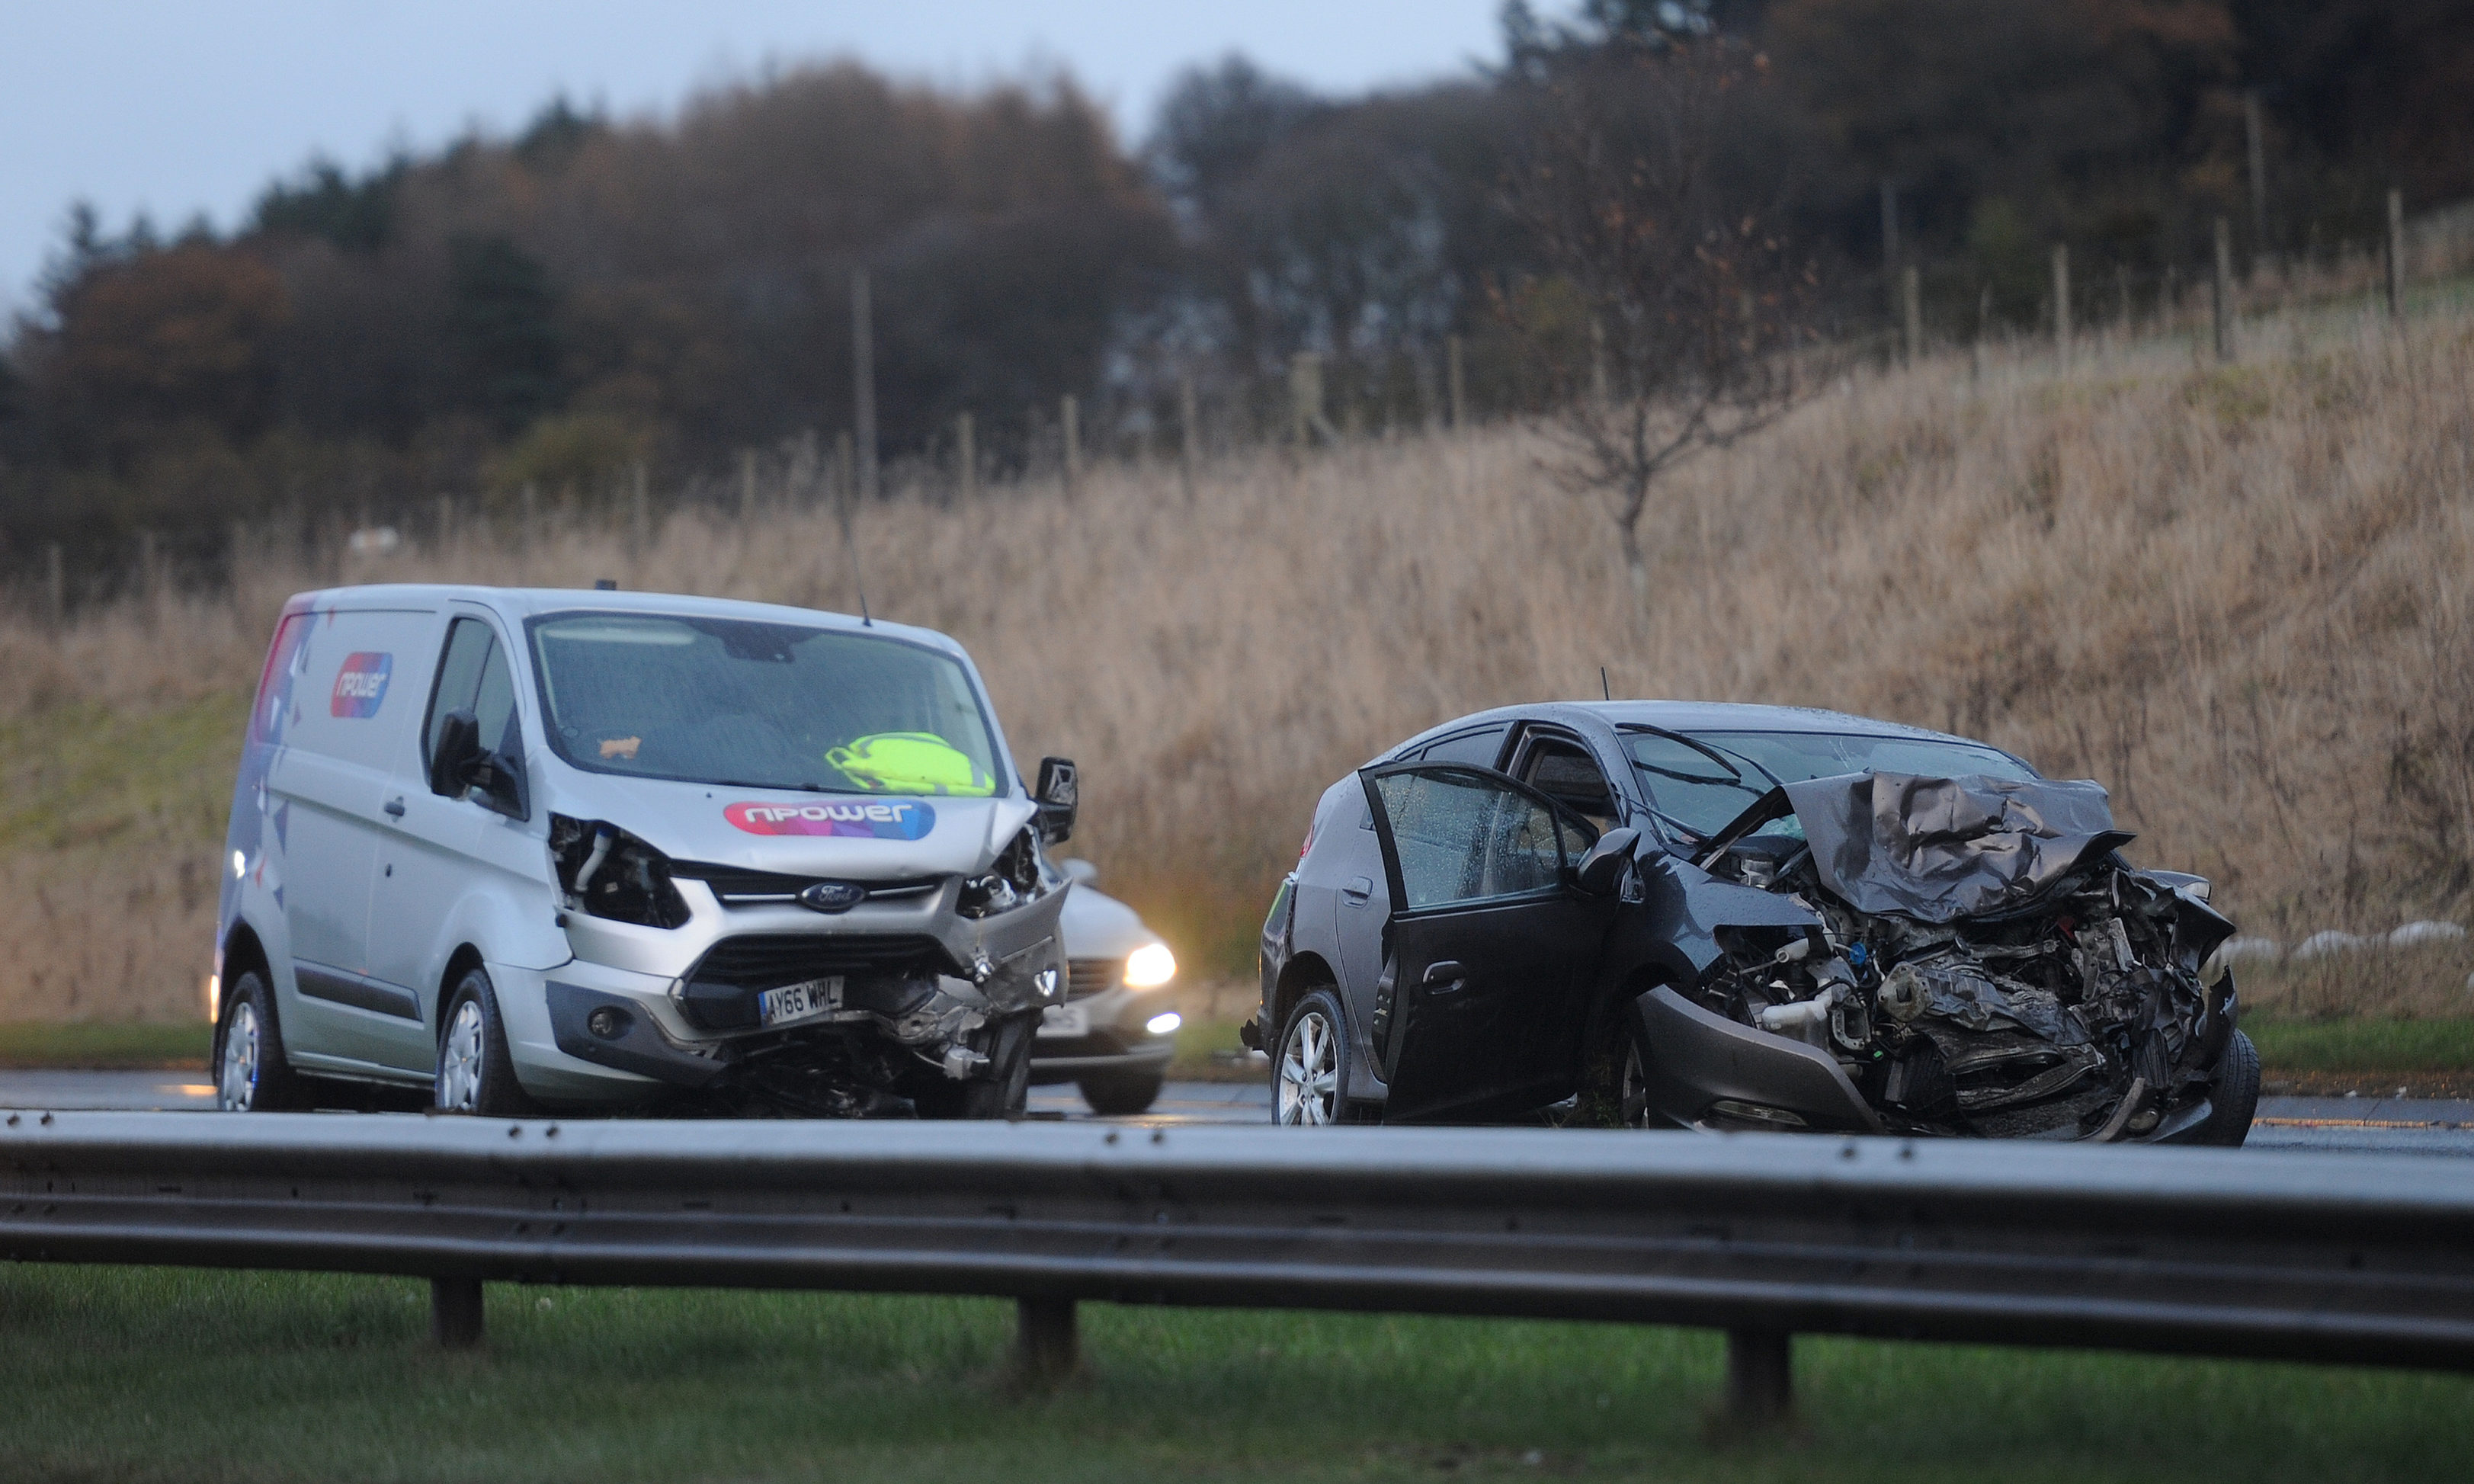 The scene of the accident on the A90 near Battledykes.